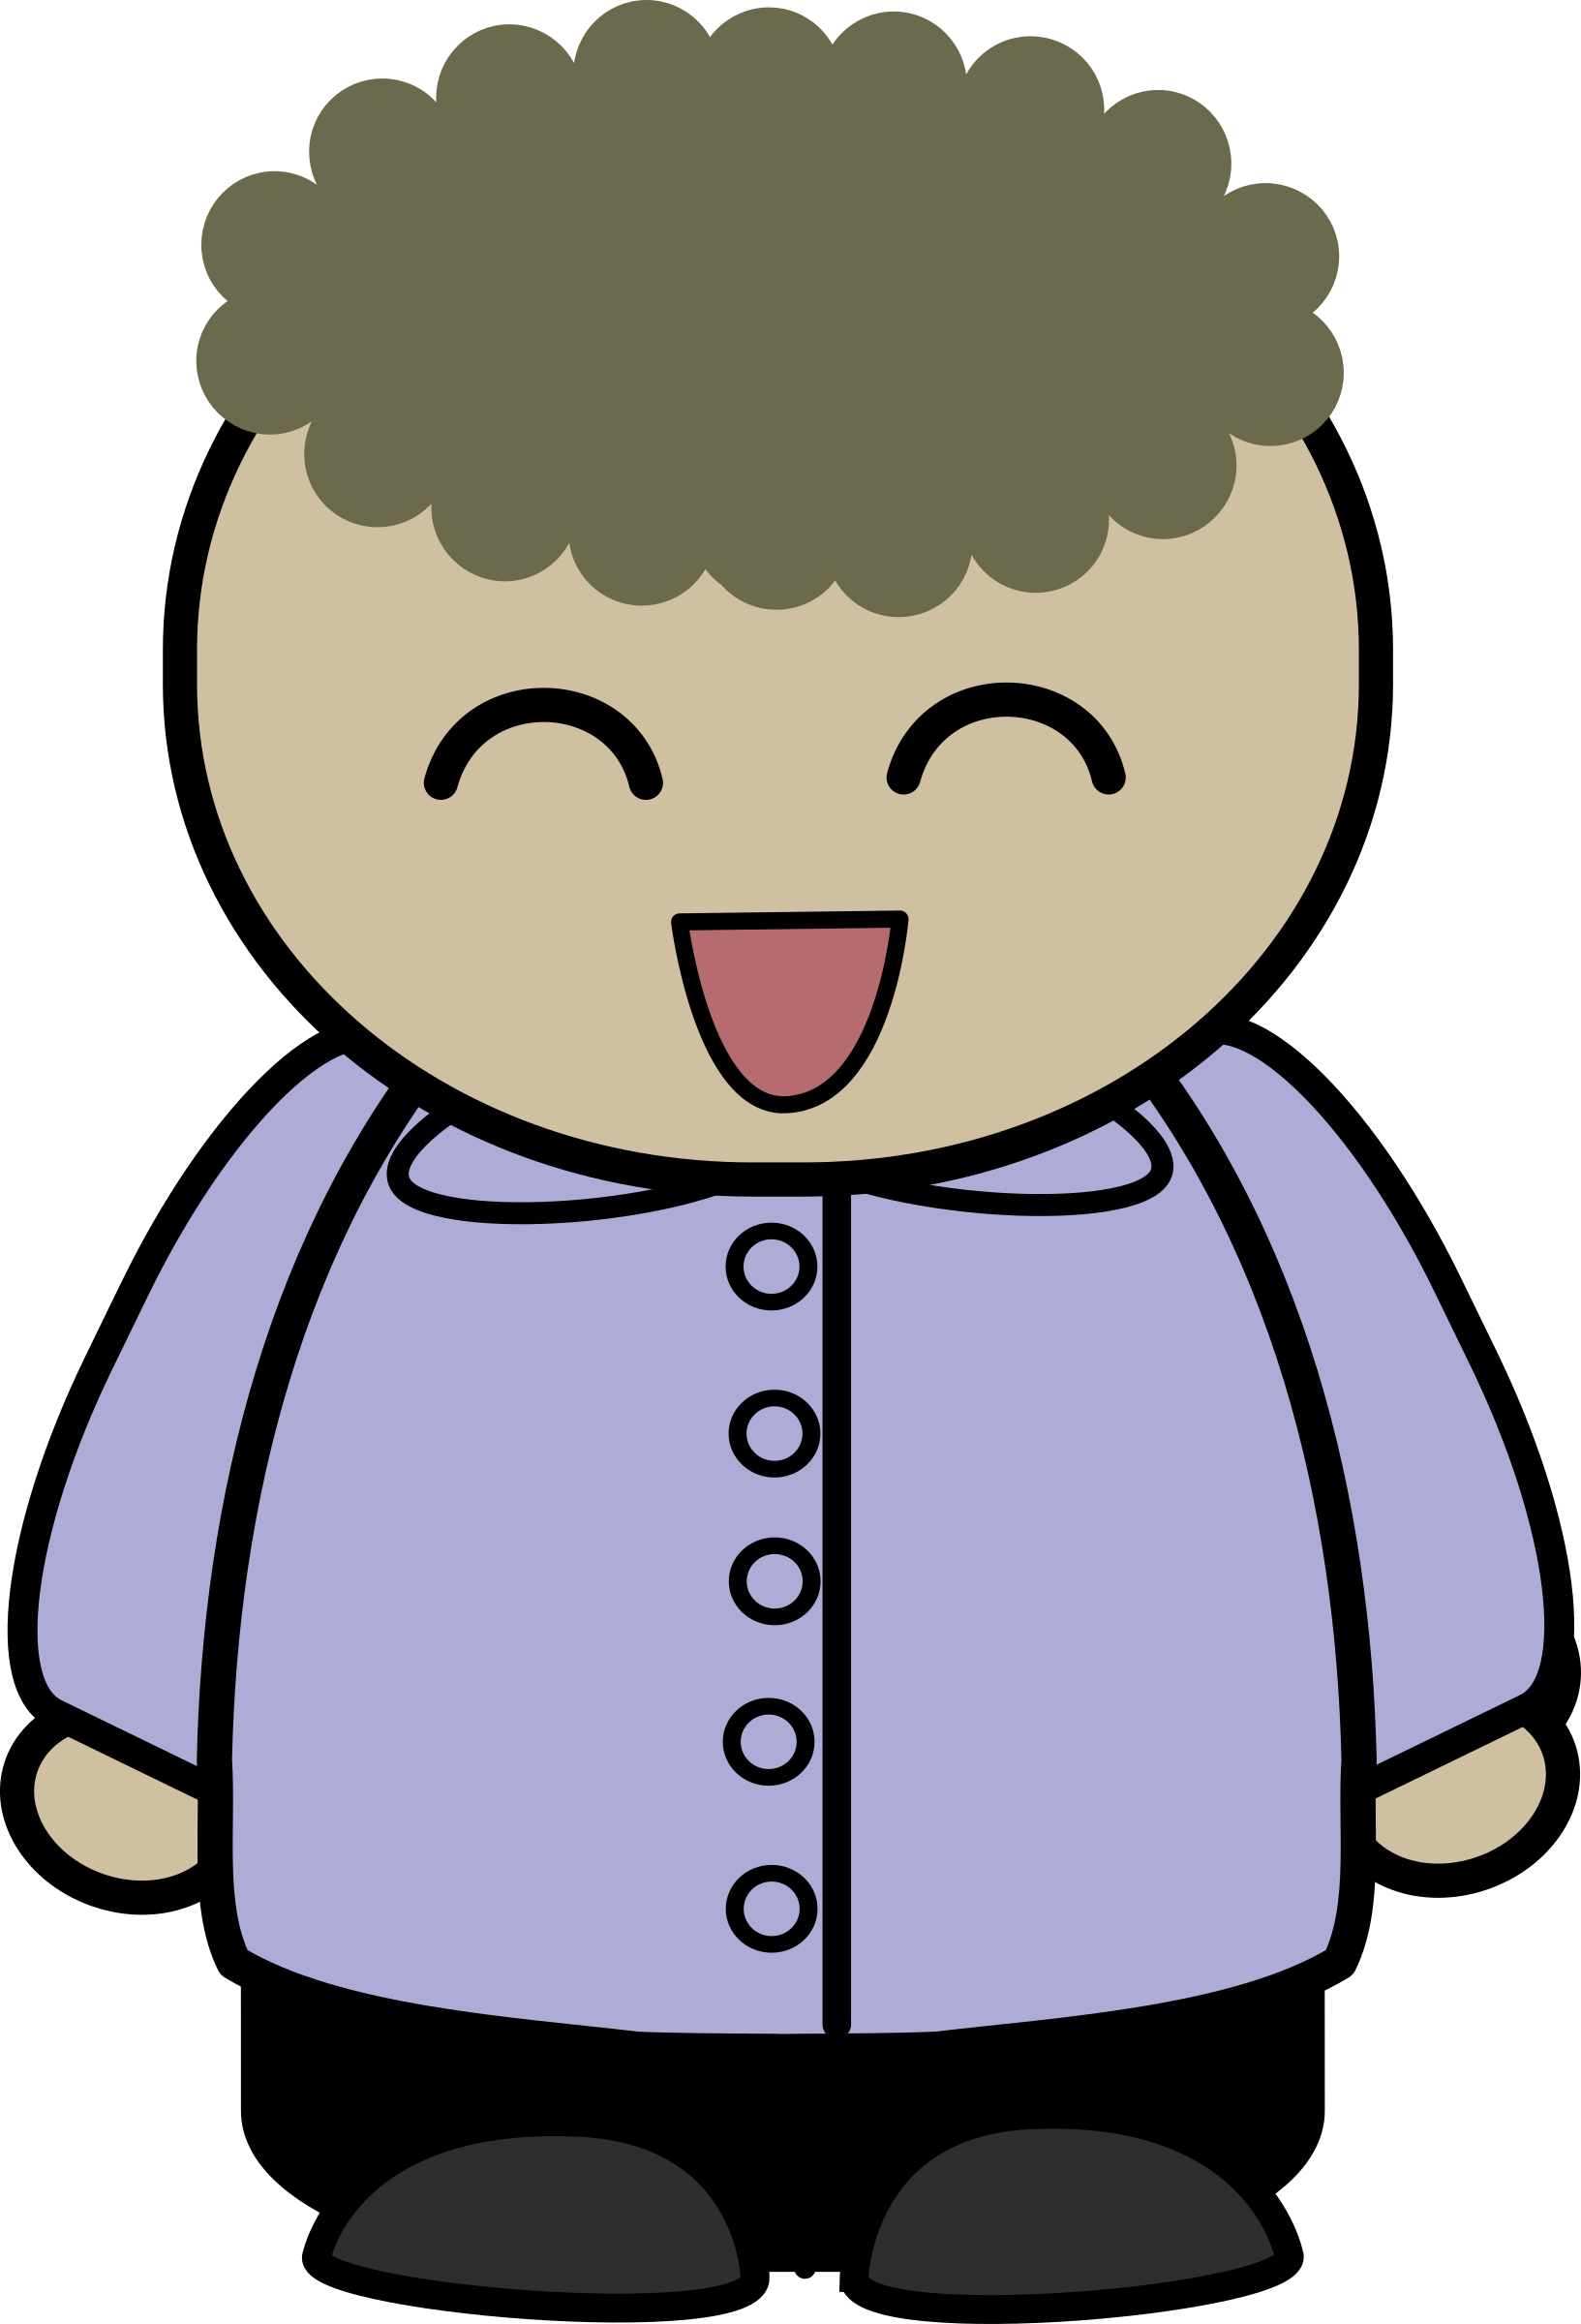 Mix and character brad. Match clipart illustration